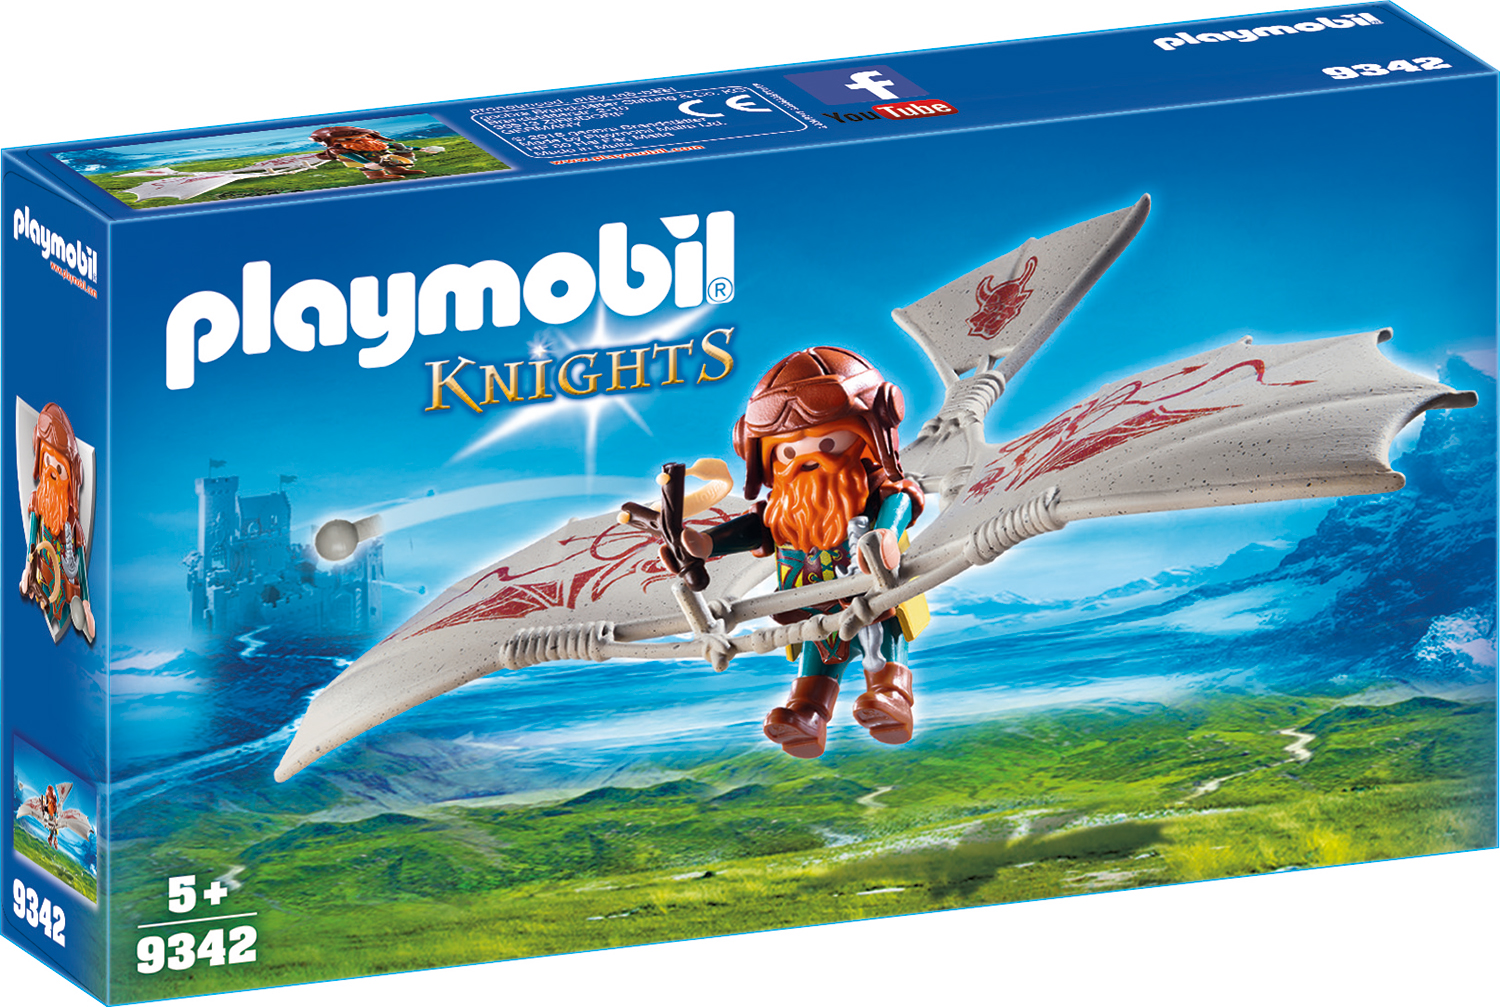 Piticul zburator playmobil knights